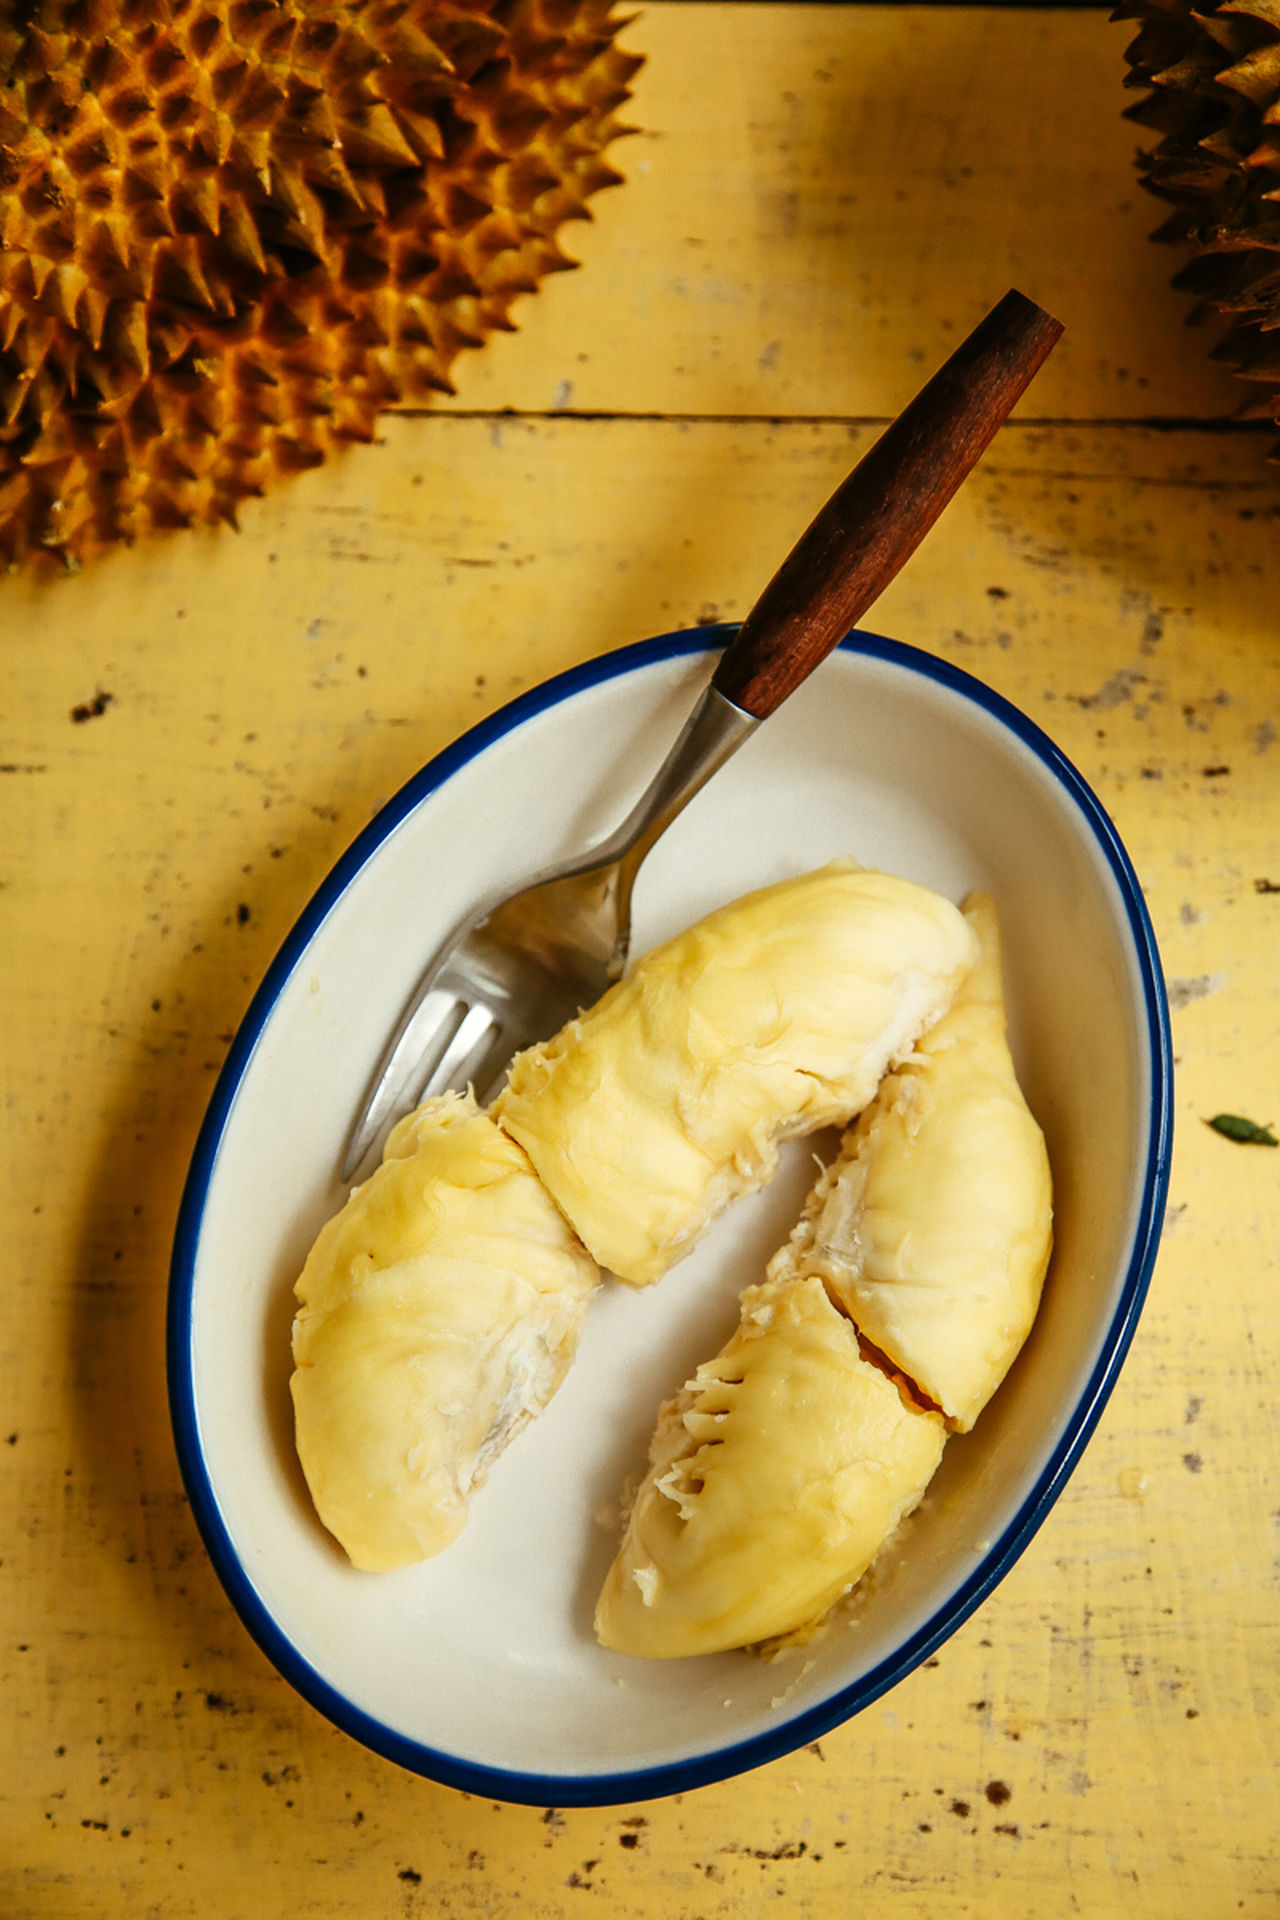 Durian is a pleasant fruit Bowl Close-up Dessert Directly Above Food Food And Drink Freshness Healthy Eating High Angle View Ice Cream Indoors  No People Ready-to-eat Sweet Food Table Yellow